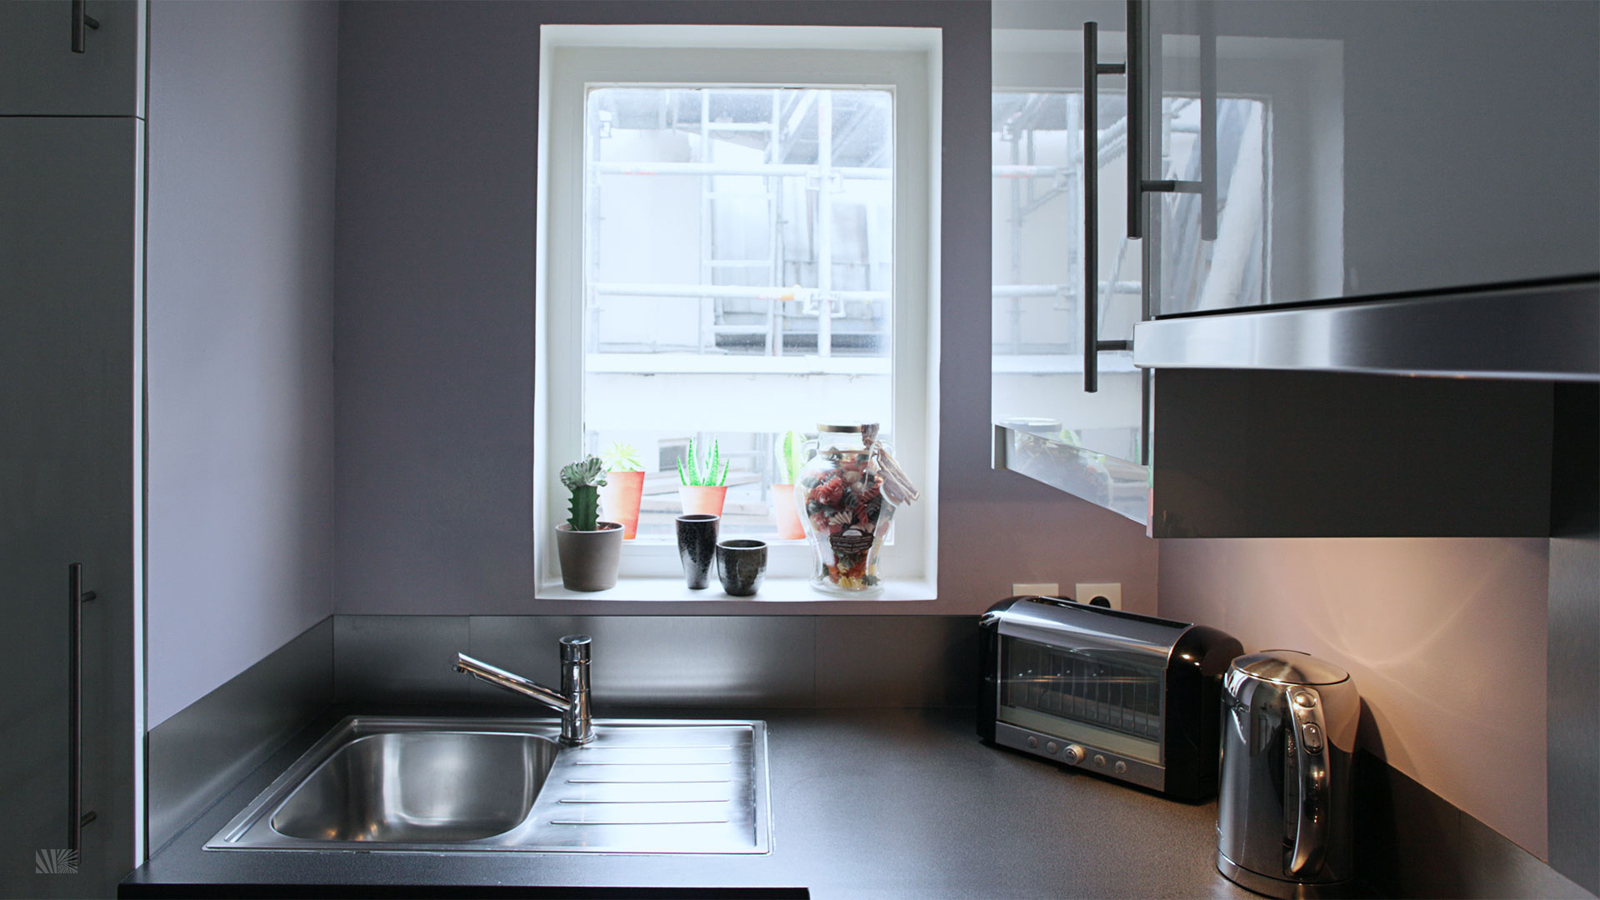 Stylish ikea kitchen for small space - Small kitchens ikea ...